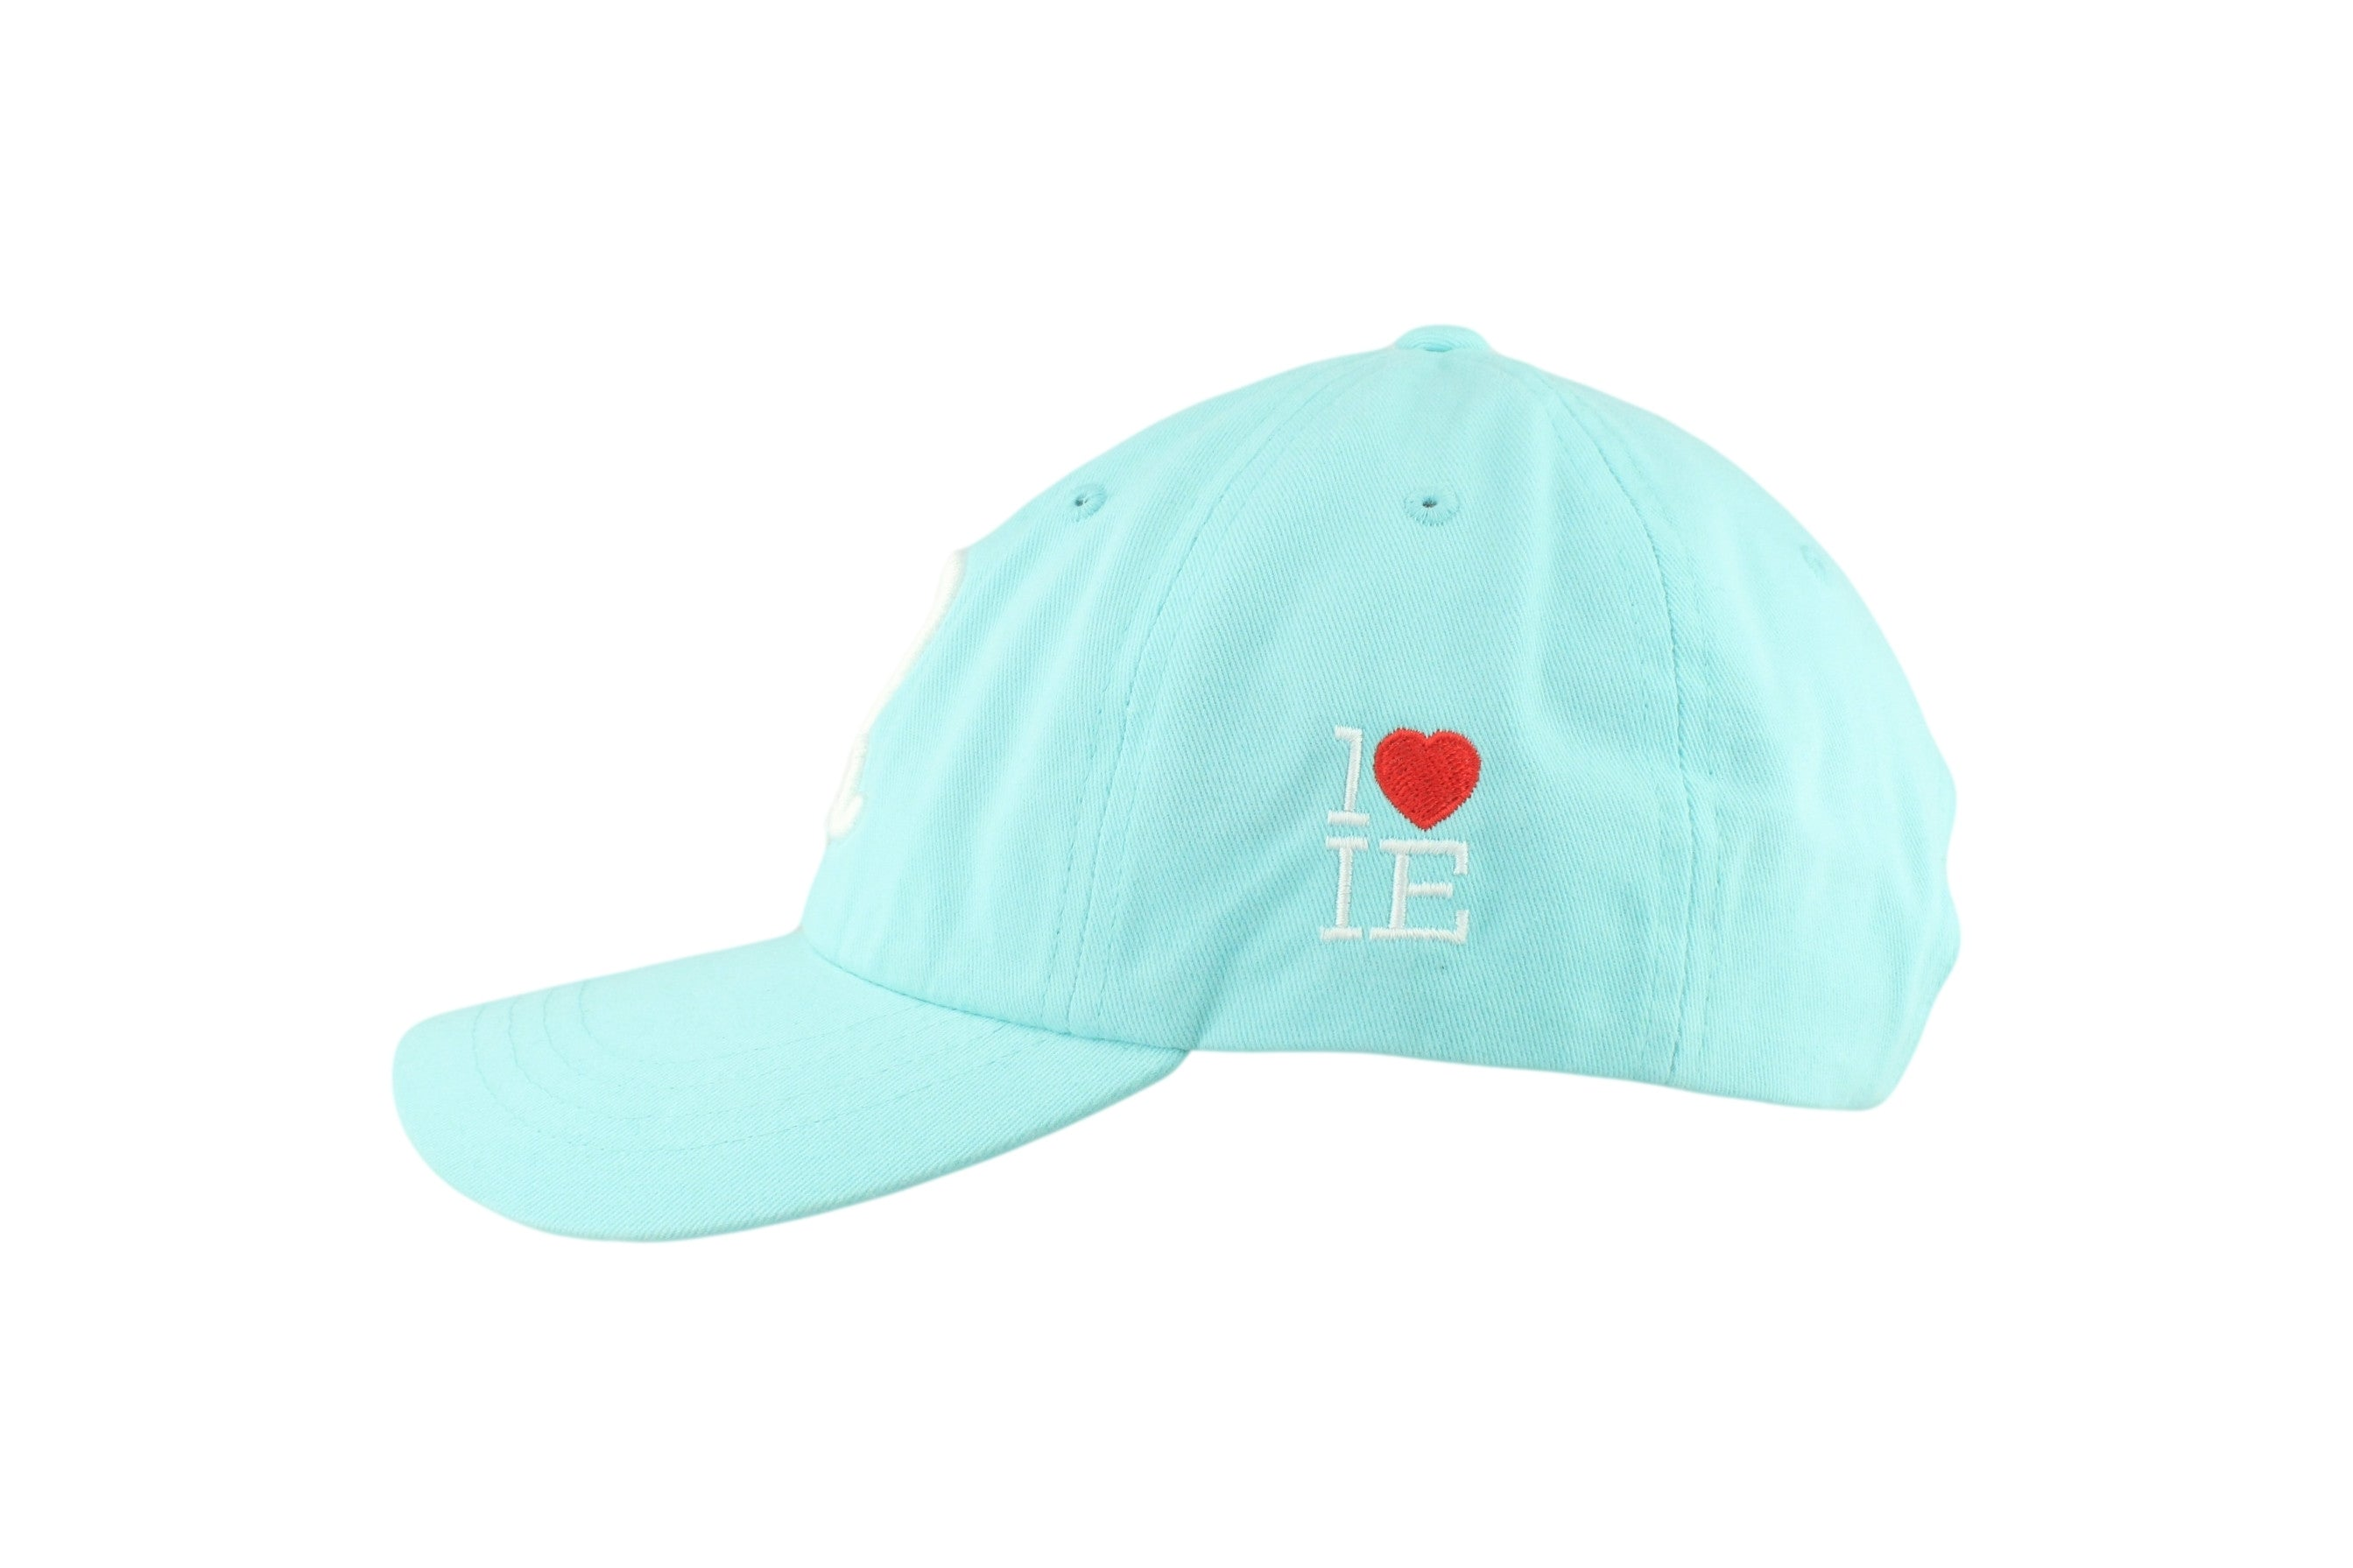 773ad496f5a teal white dad hat side.jpeg v 1500746497